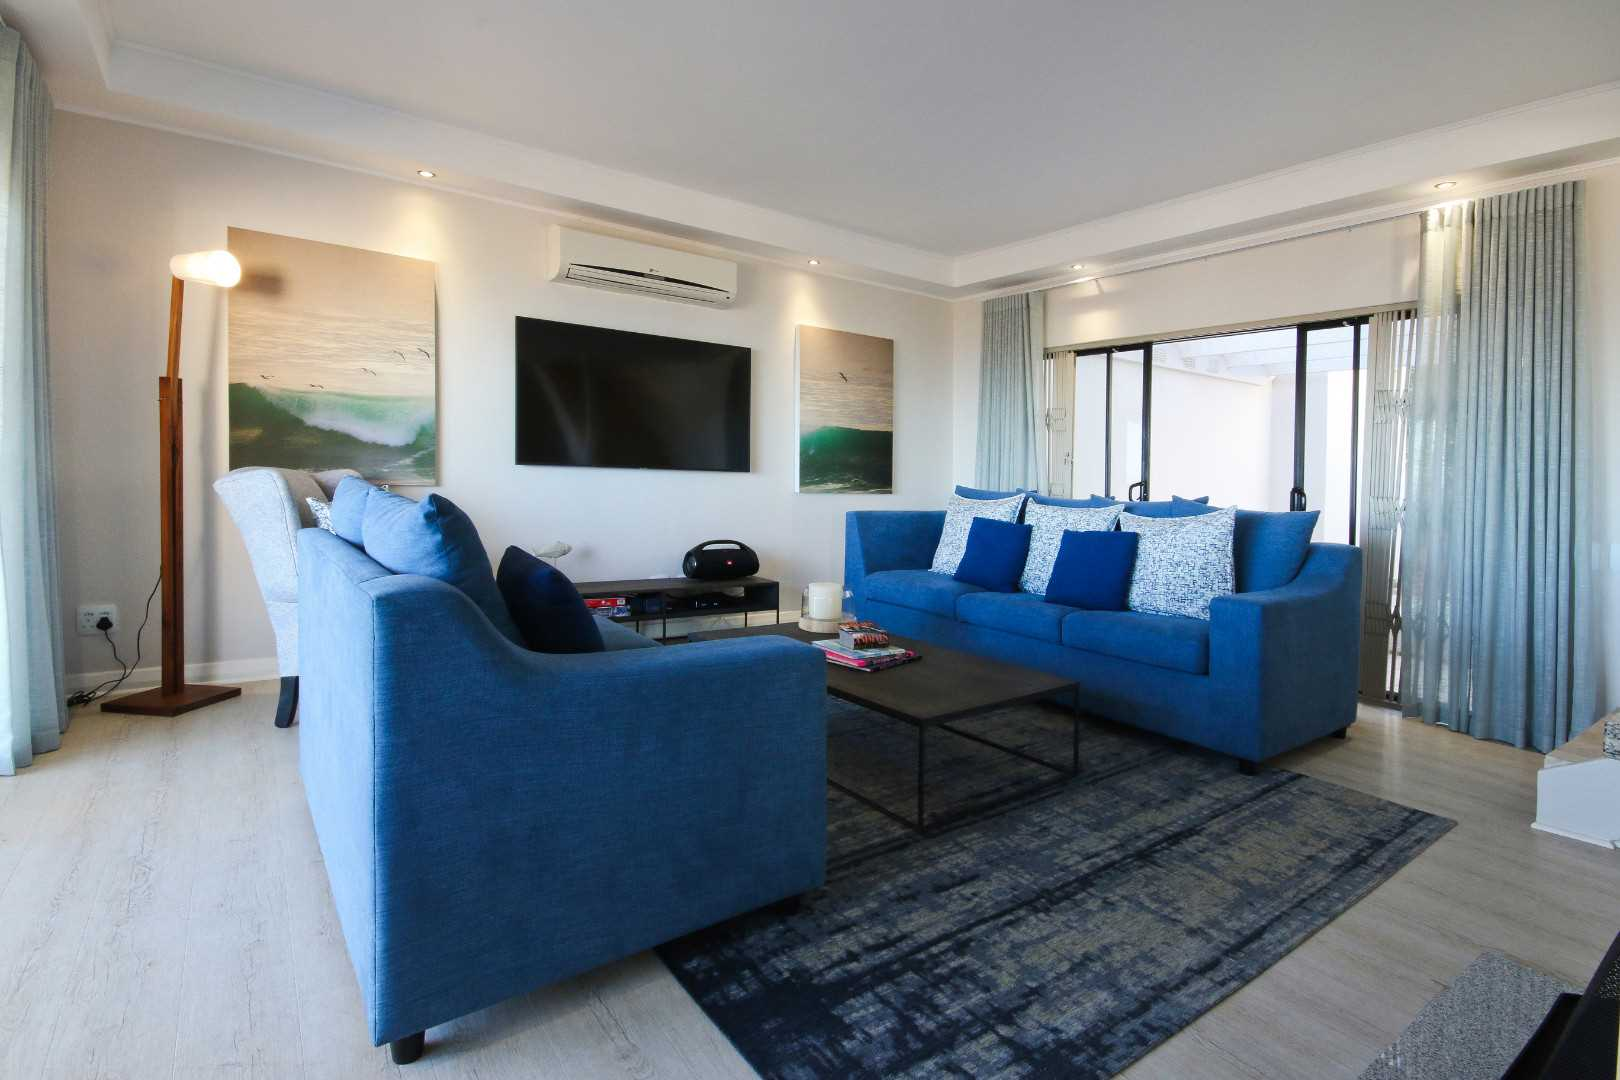 Living room with fireplace and aircon unit